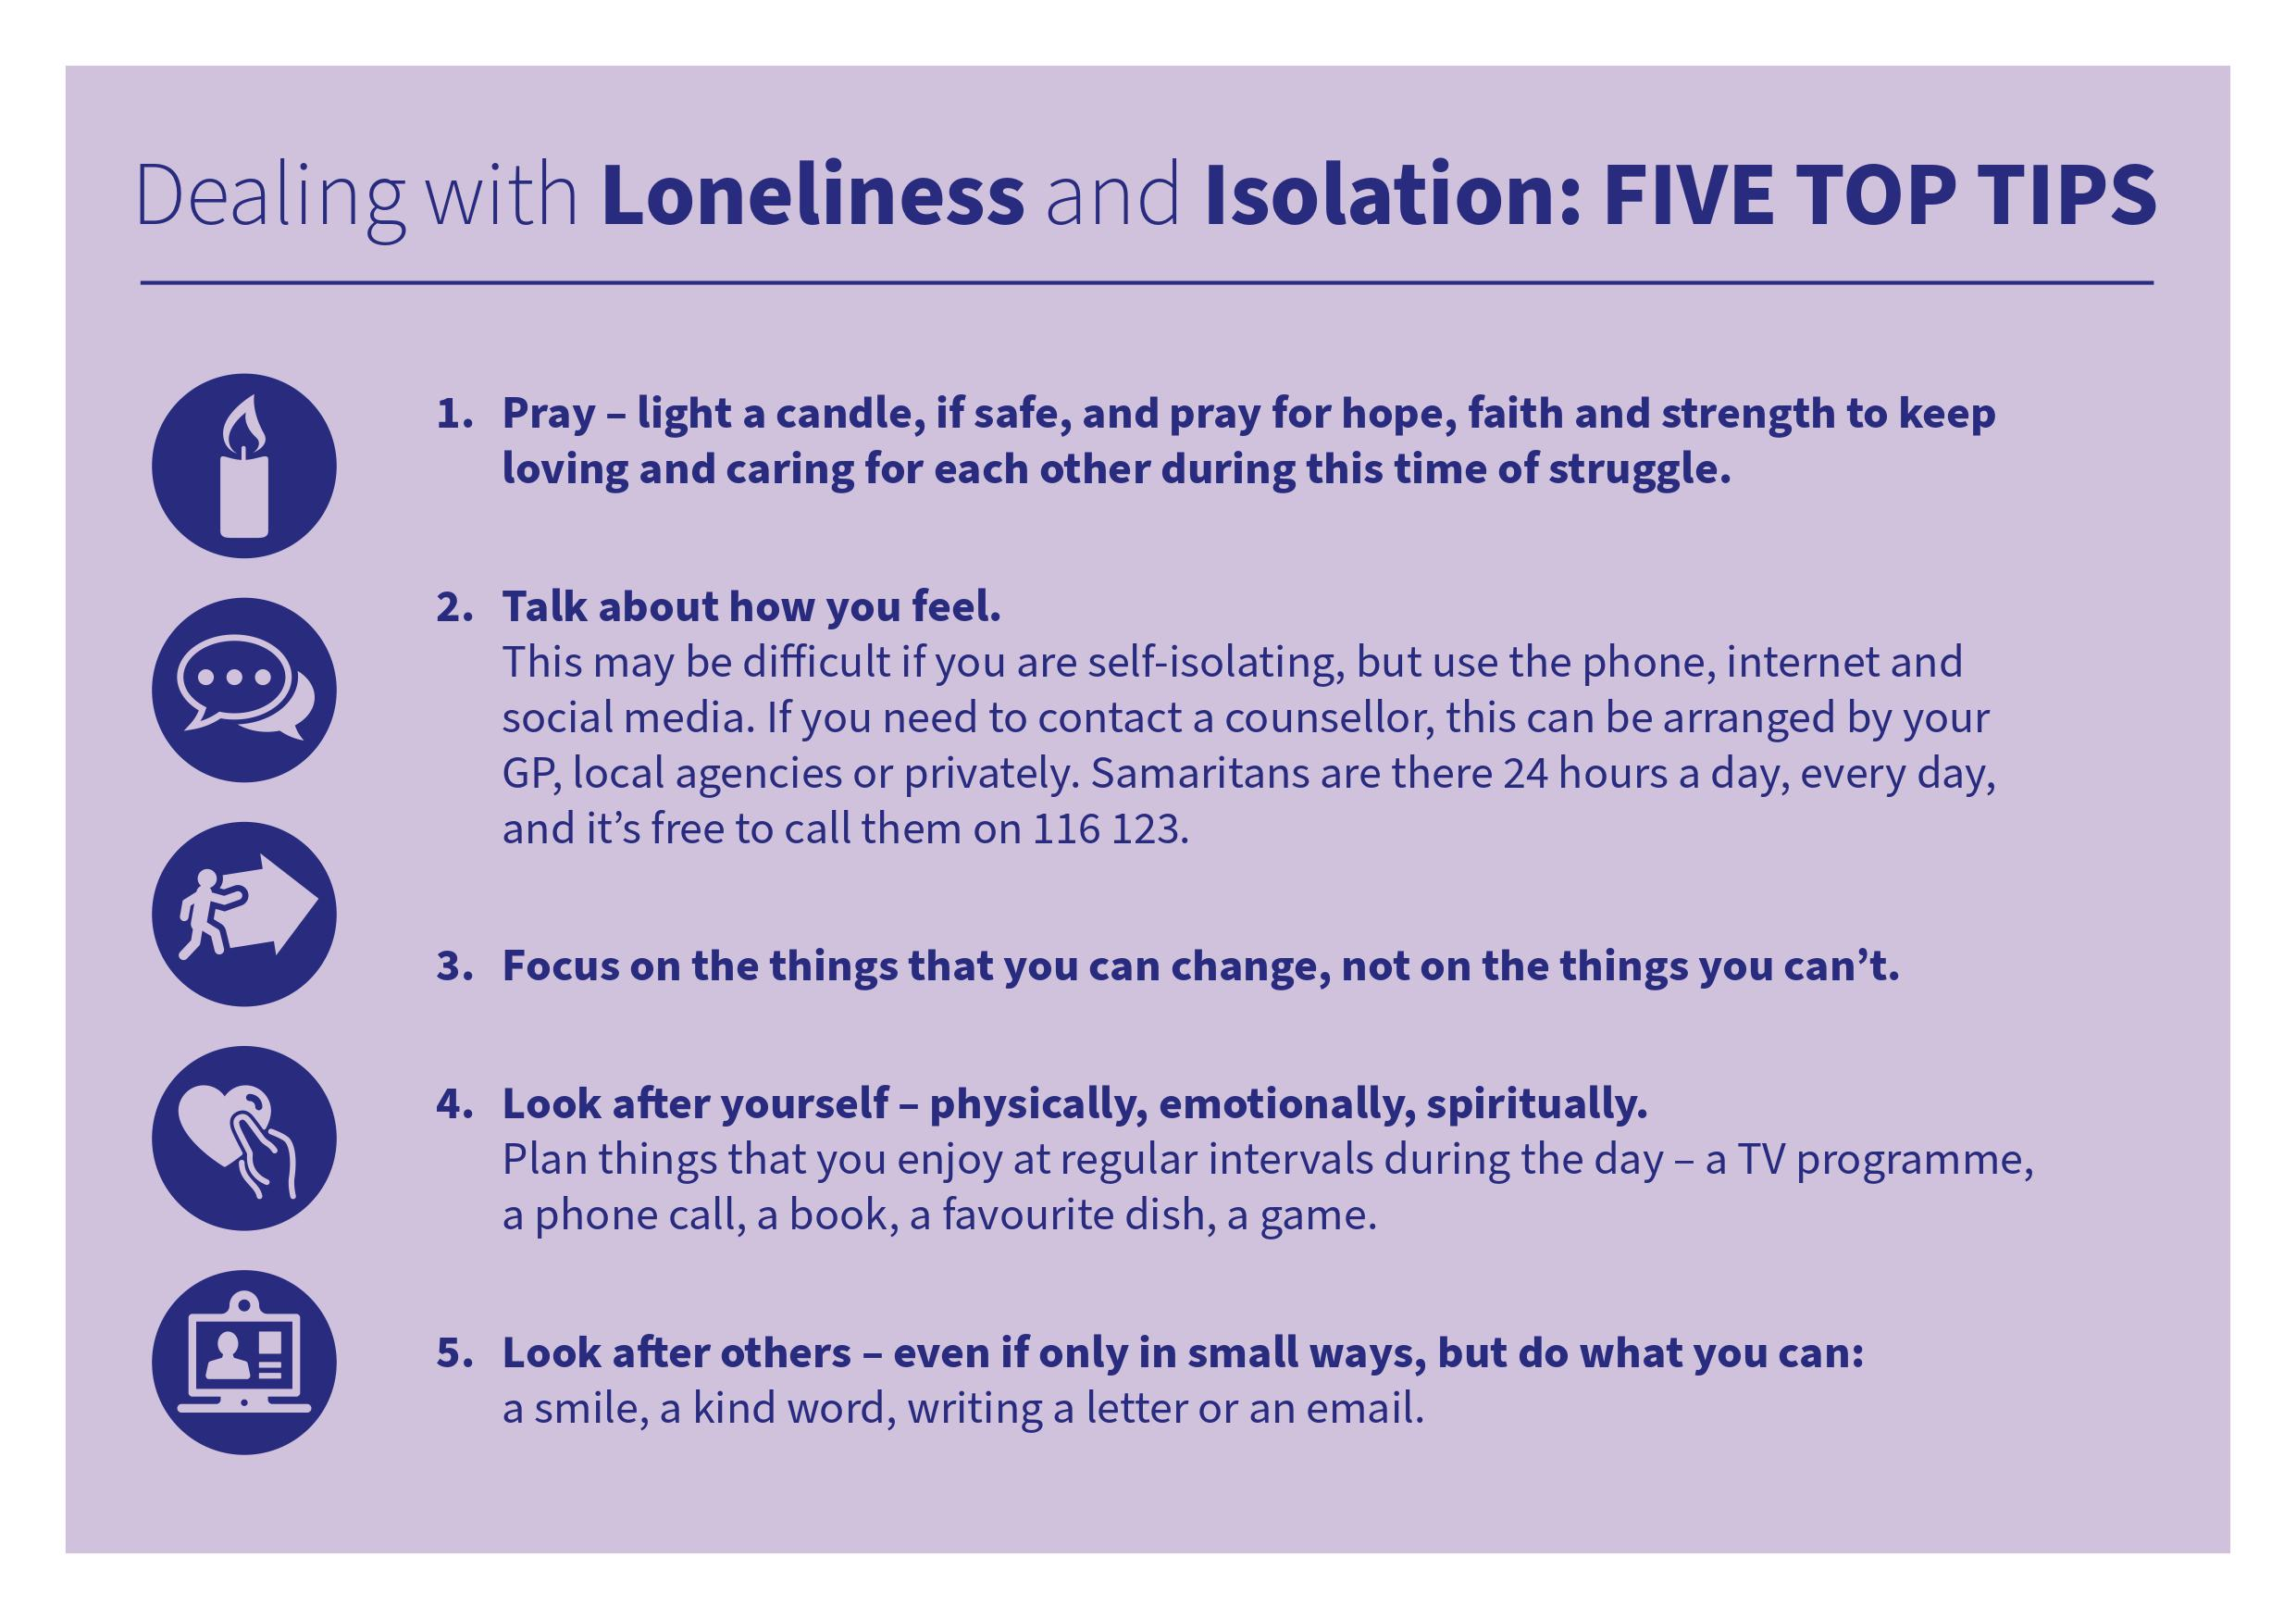 Church of England Top 5 tips on how to deal with isolation and loneliness